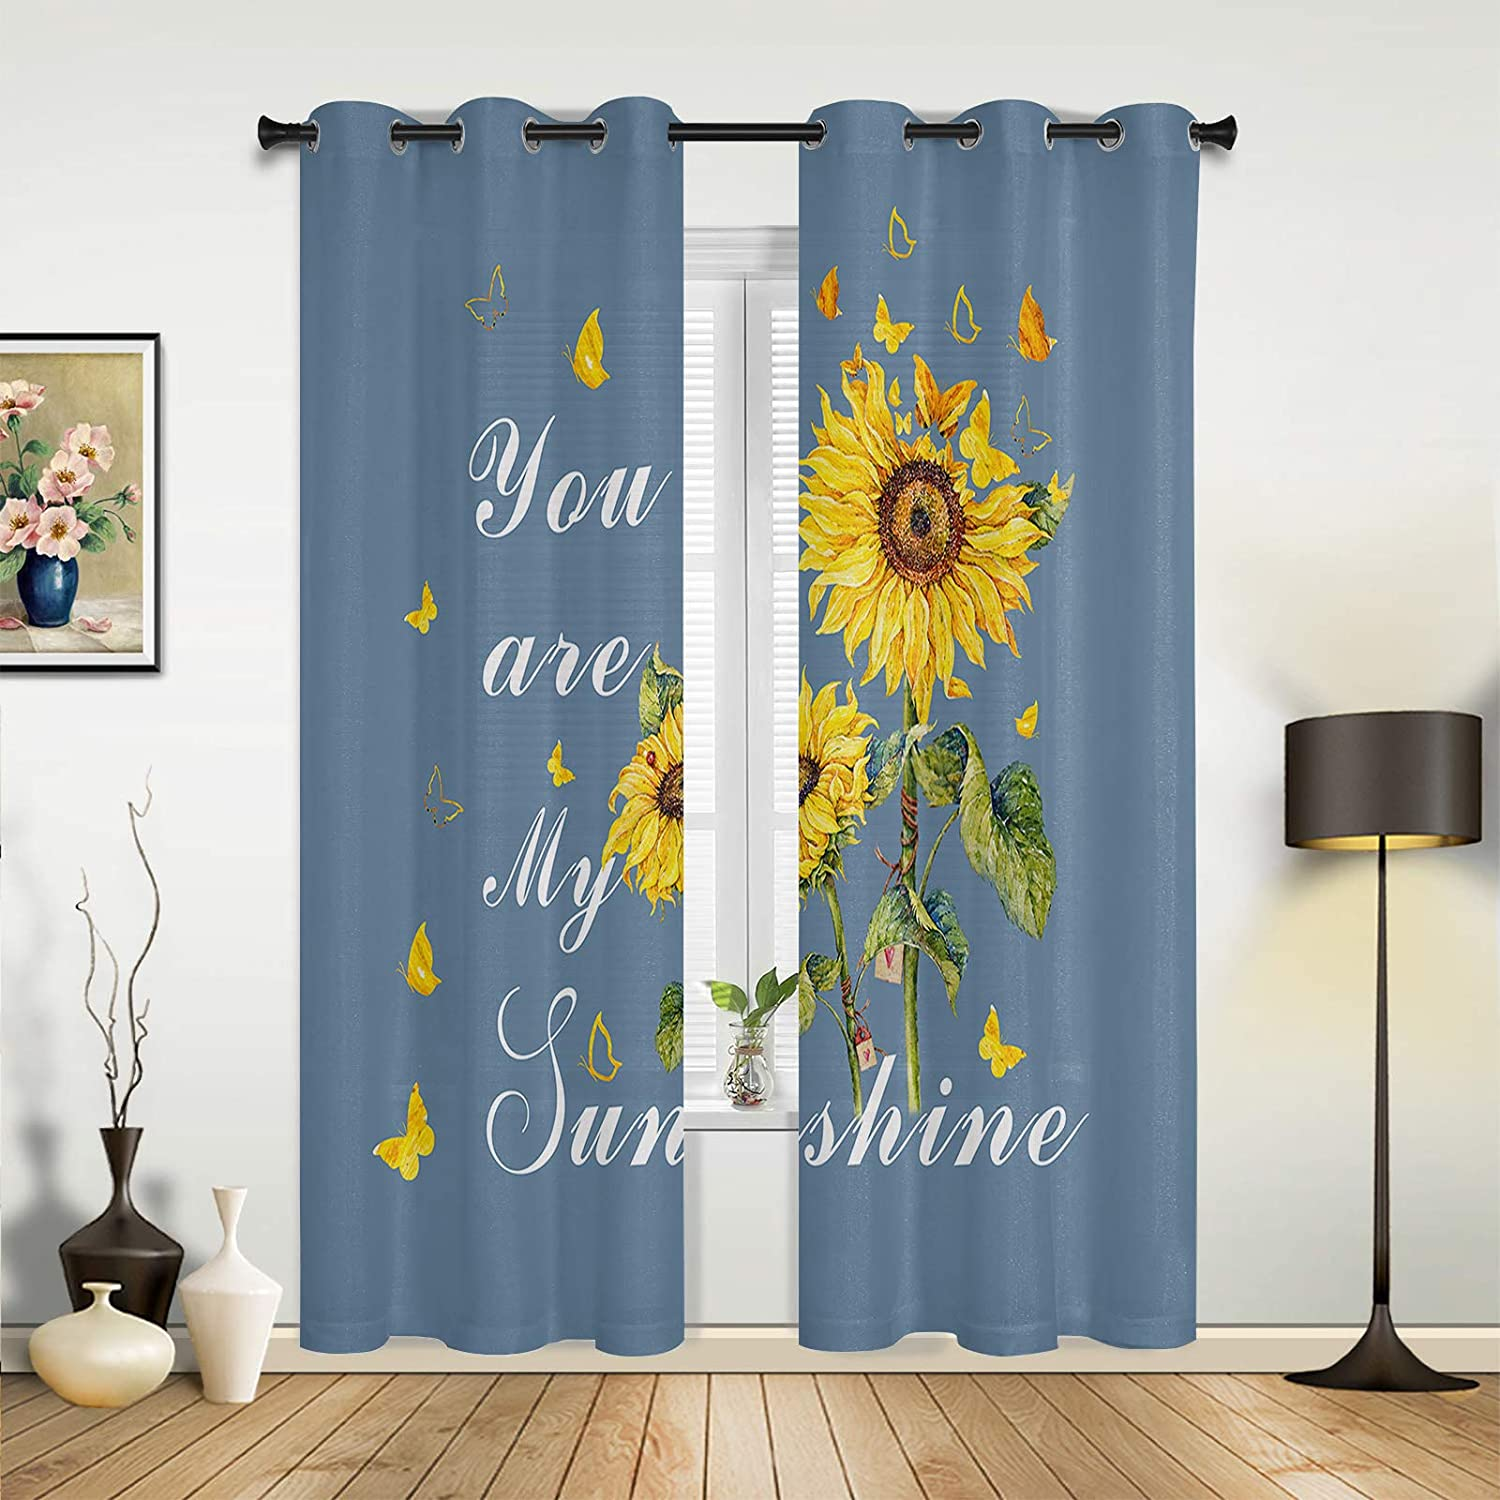 Beauty Decor Window Sheer Curtains Room Living Rusti Cash special price for Indianapolis Mall Bedroom